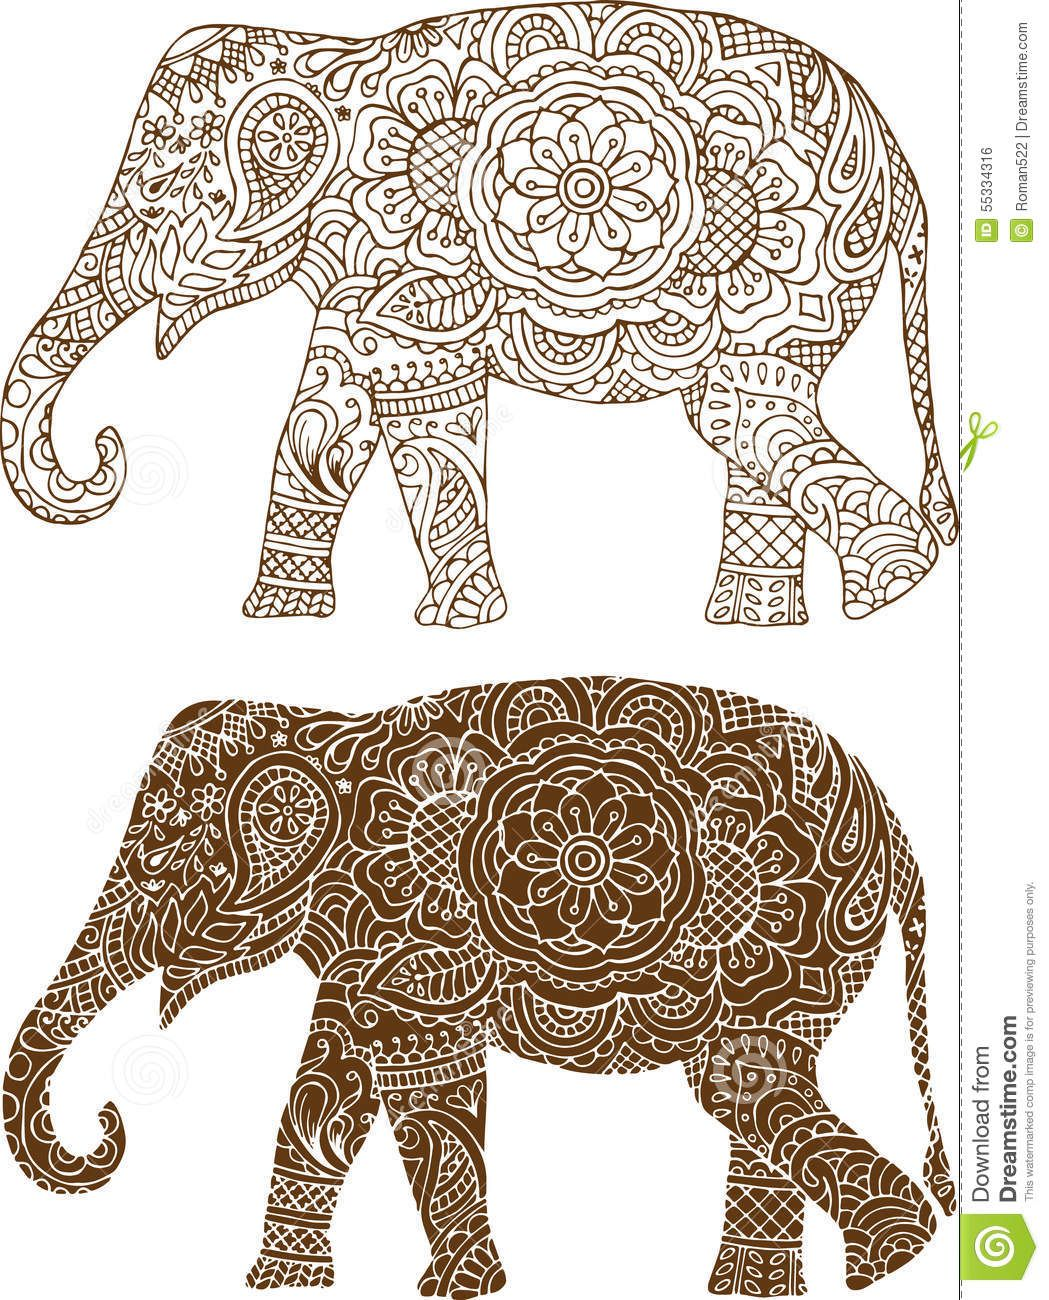 Zentangle Elefant Vorlage Indian Elephant Patterns Silhouettes Stencils